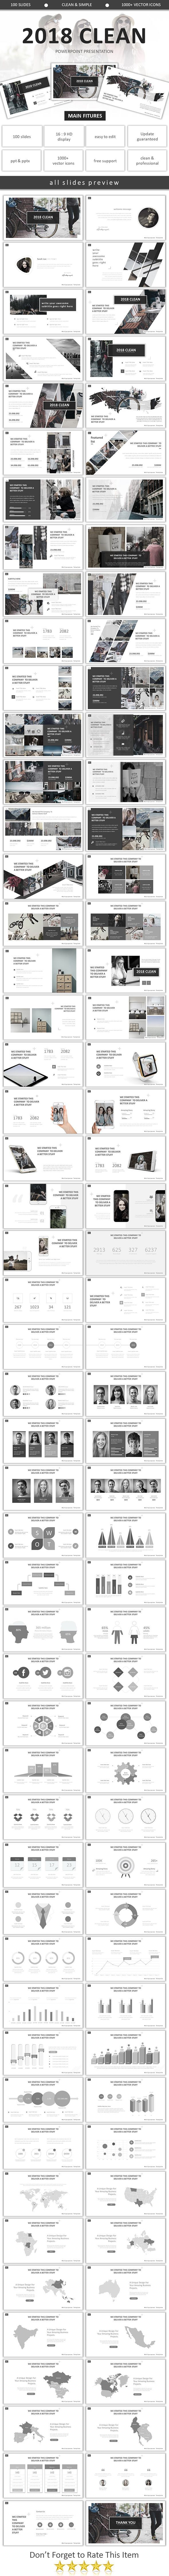 2018 Clean Minimal Powerpoint - Business #PowerPoint Templates